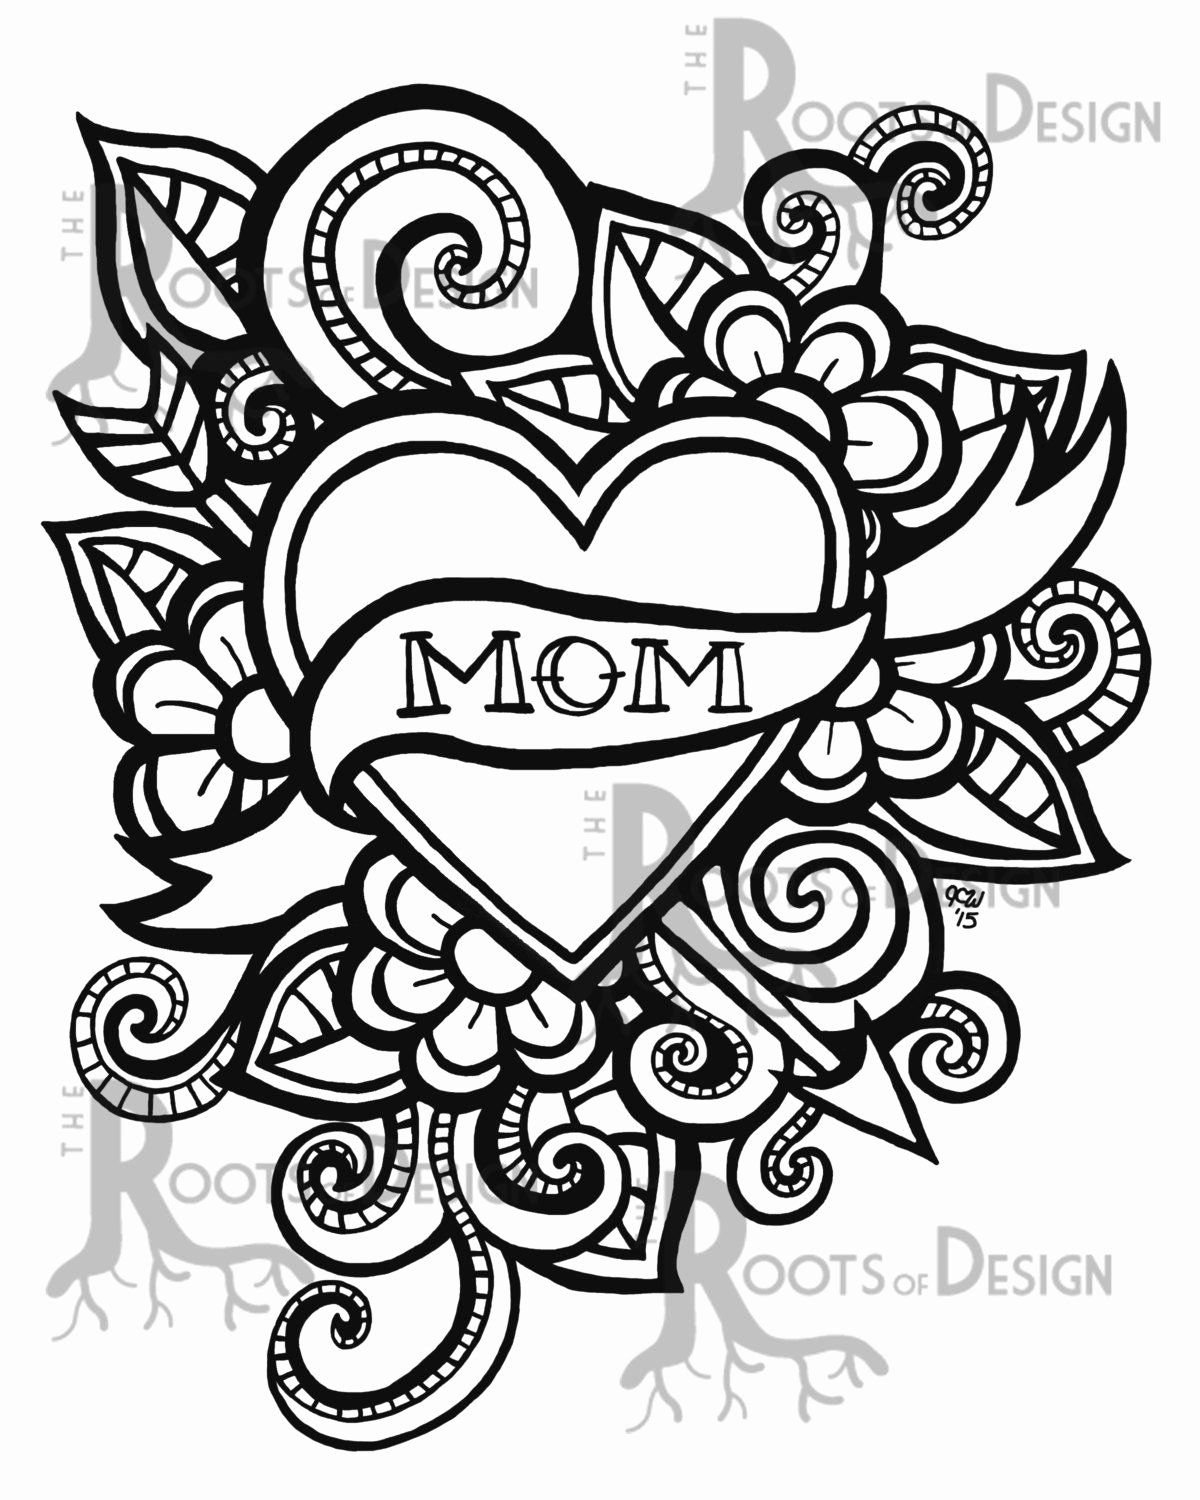 Happy Mothers Day Coloring Sheet Unique Coloring Mom Coloring Pages To Print Mother And Daughter Mom Coloring Pages Coloring Pages Skull Coloring Pages